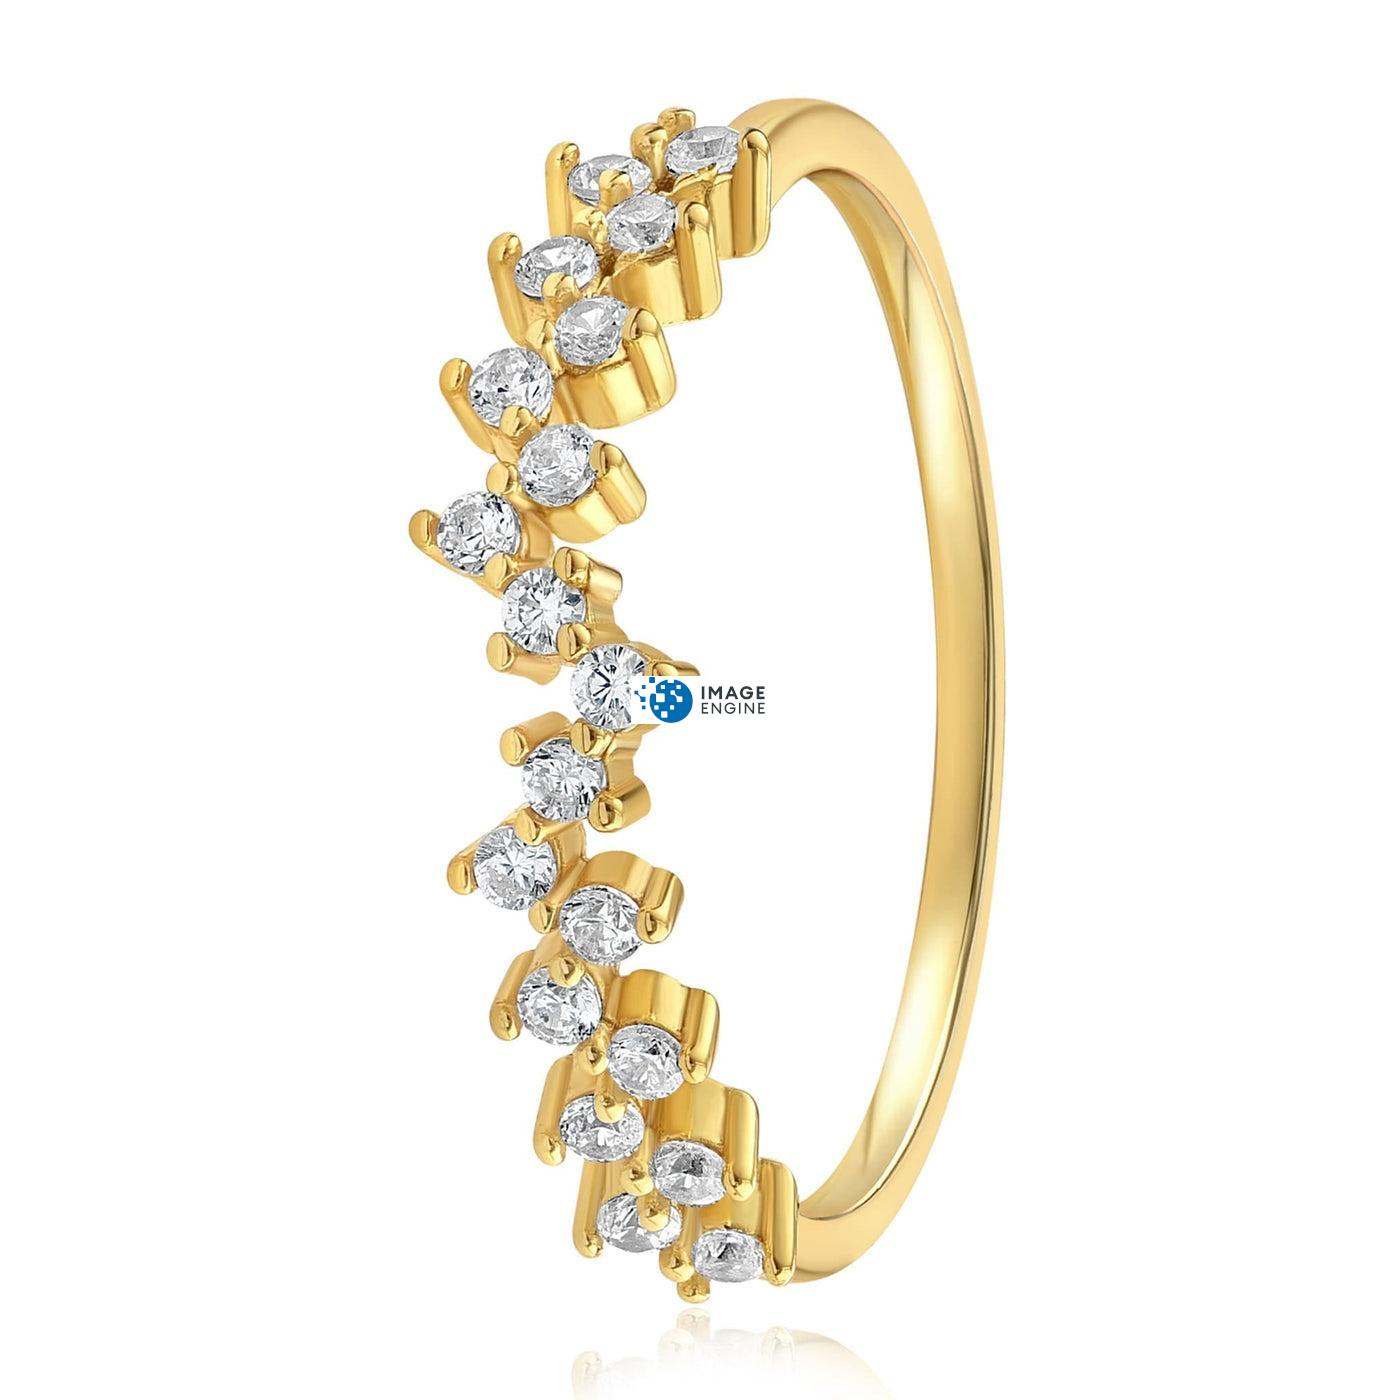 Esther Petite Cluster Ring - Side View - 18K Yellow Gold Vermeil